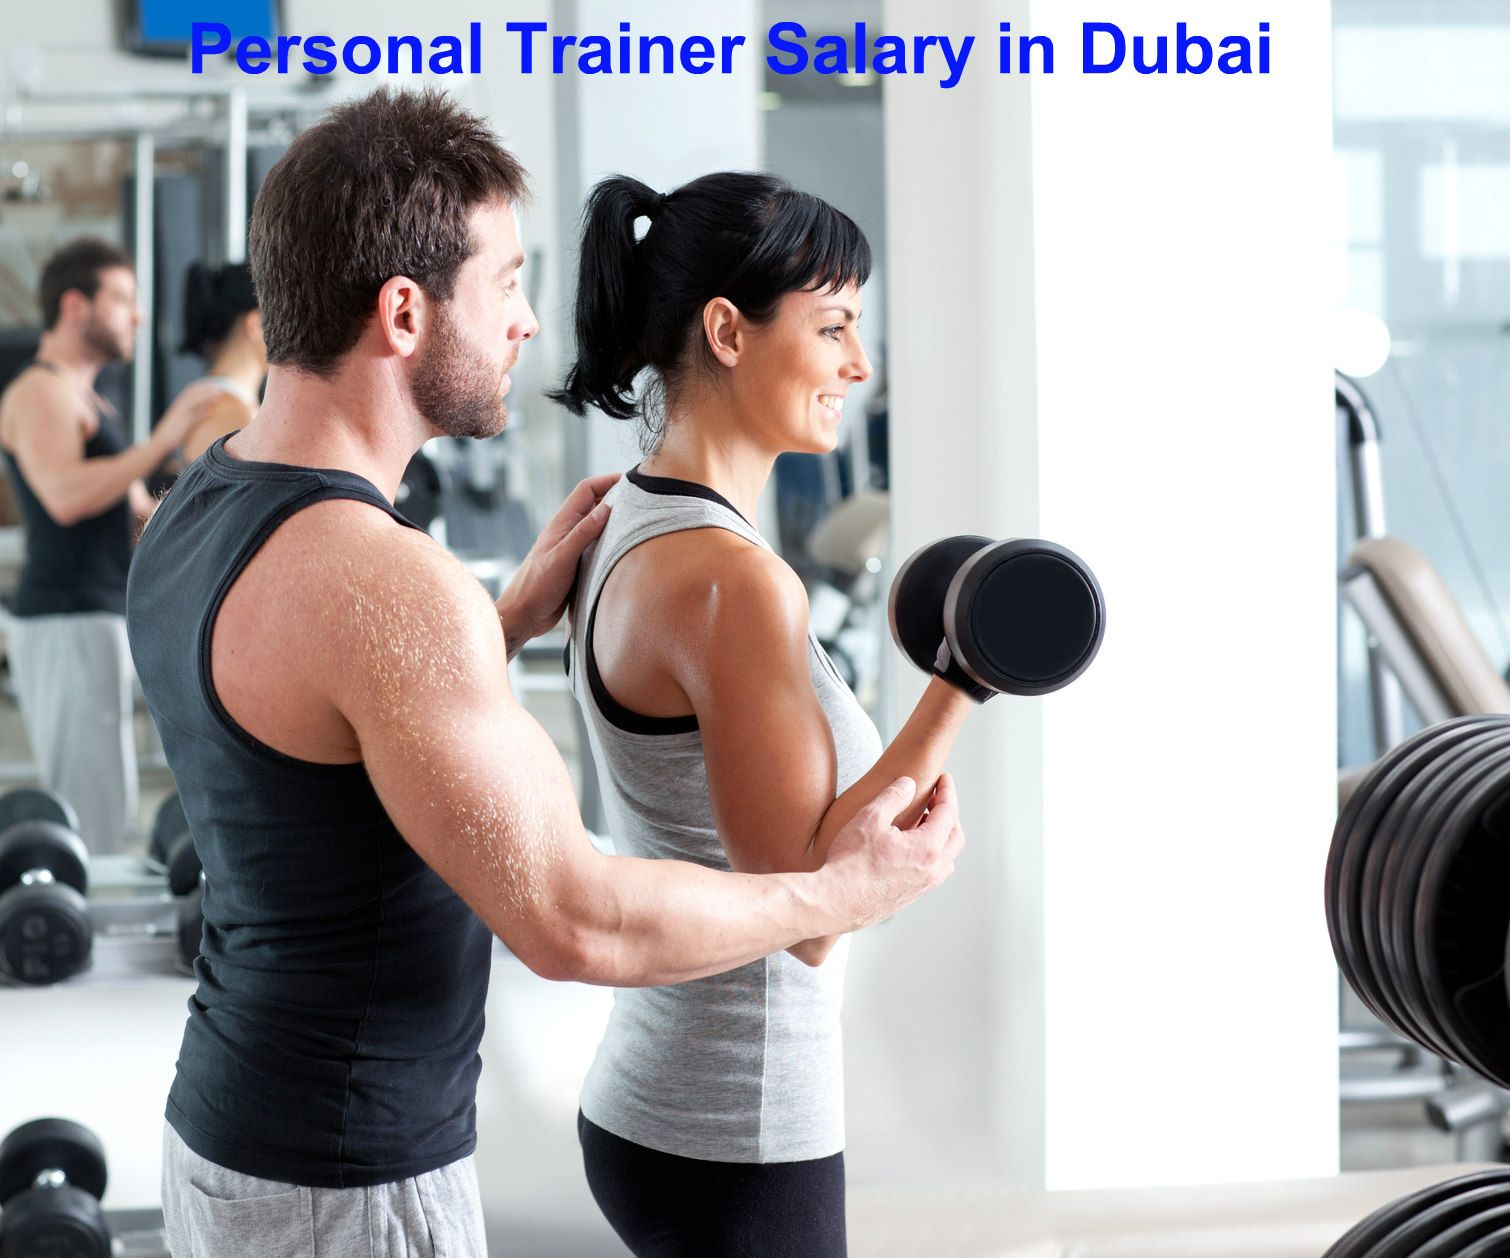 Personal Trainer salary in Dubai